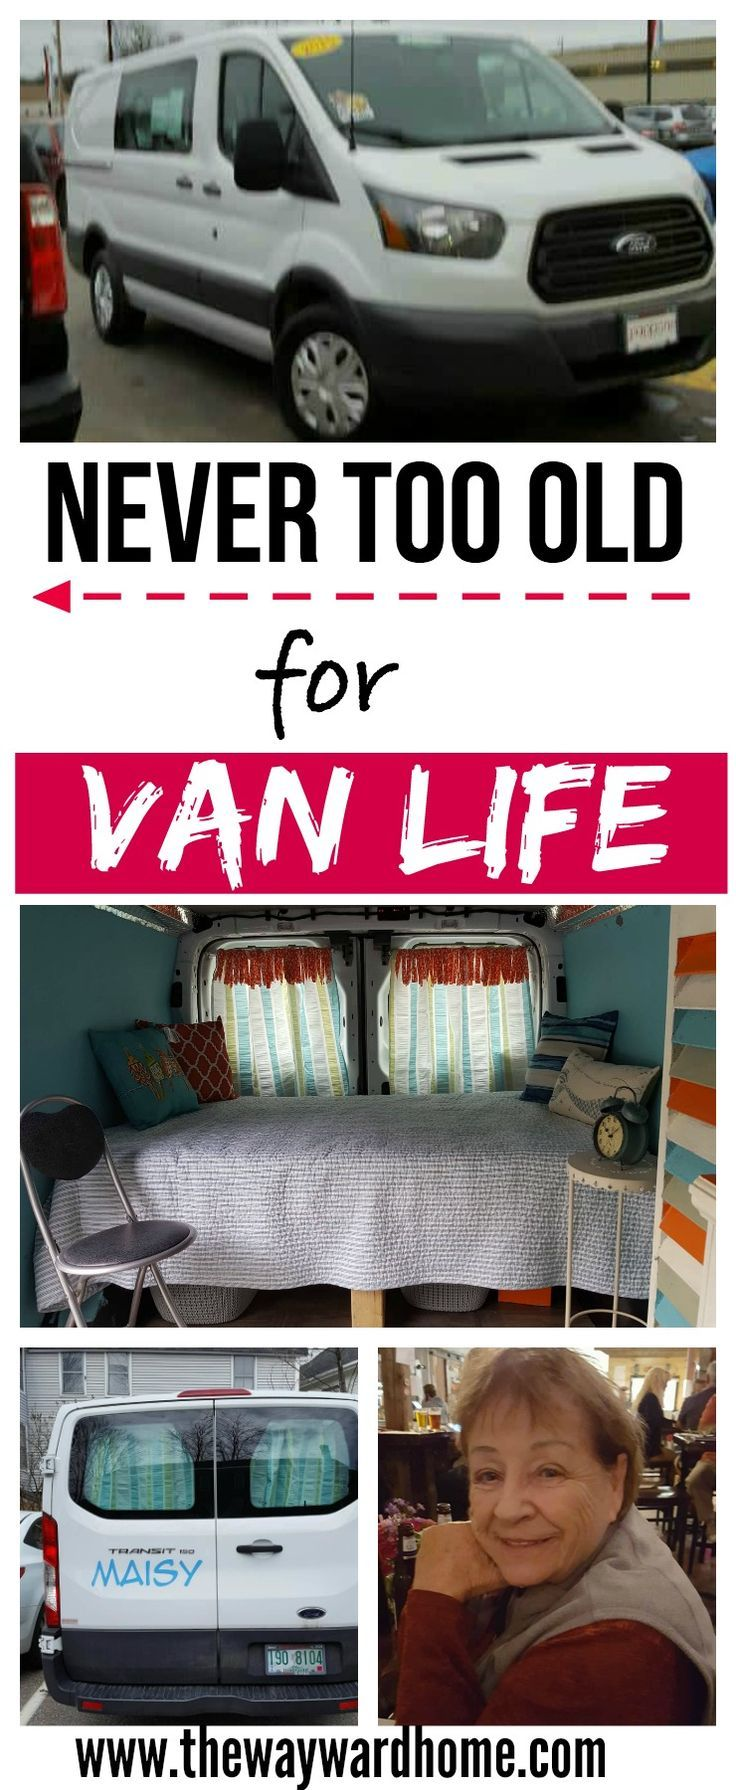 A 79-year-old woman is planning on traveling in her Ford Transit campervan conversion. See how she plans on doing it! #vanlife #fordtransit #vanconversion #campervan #diycamper #diyconversion